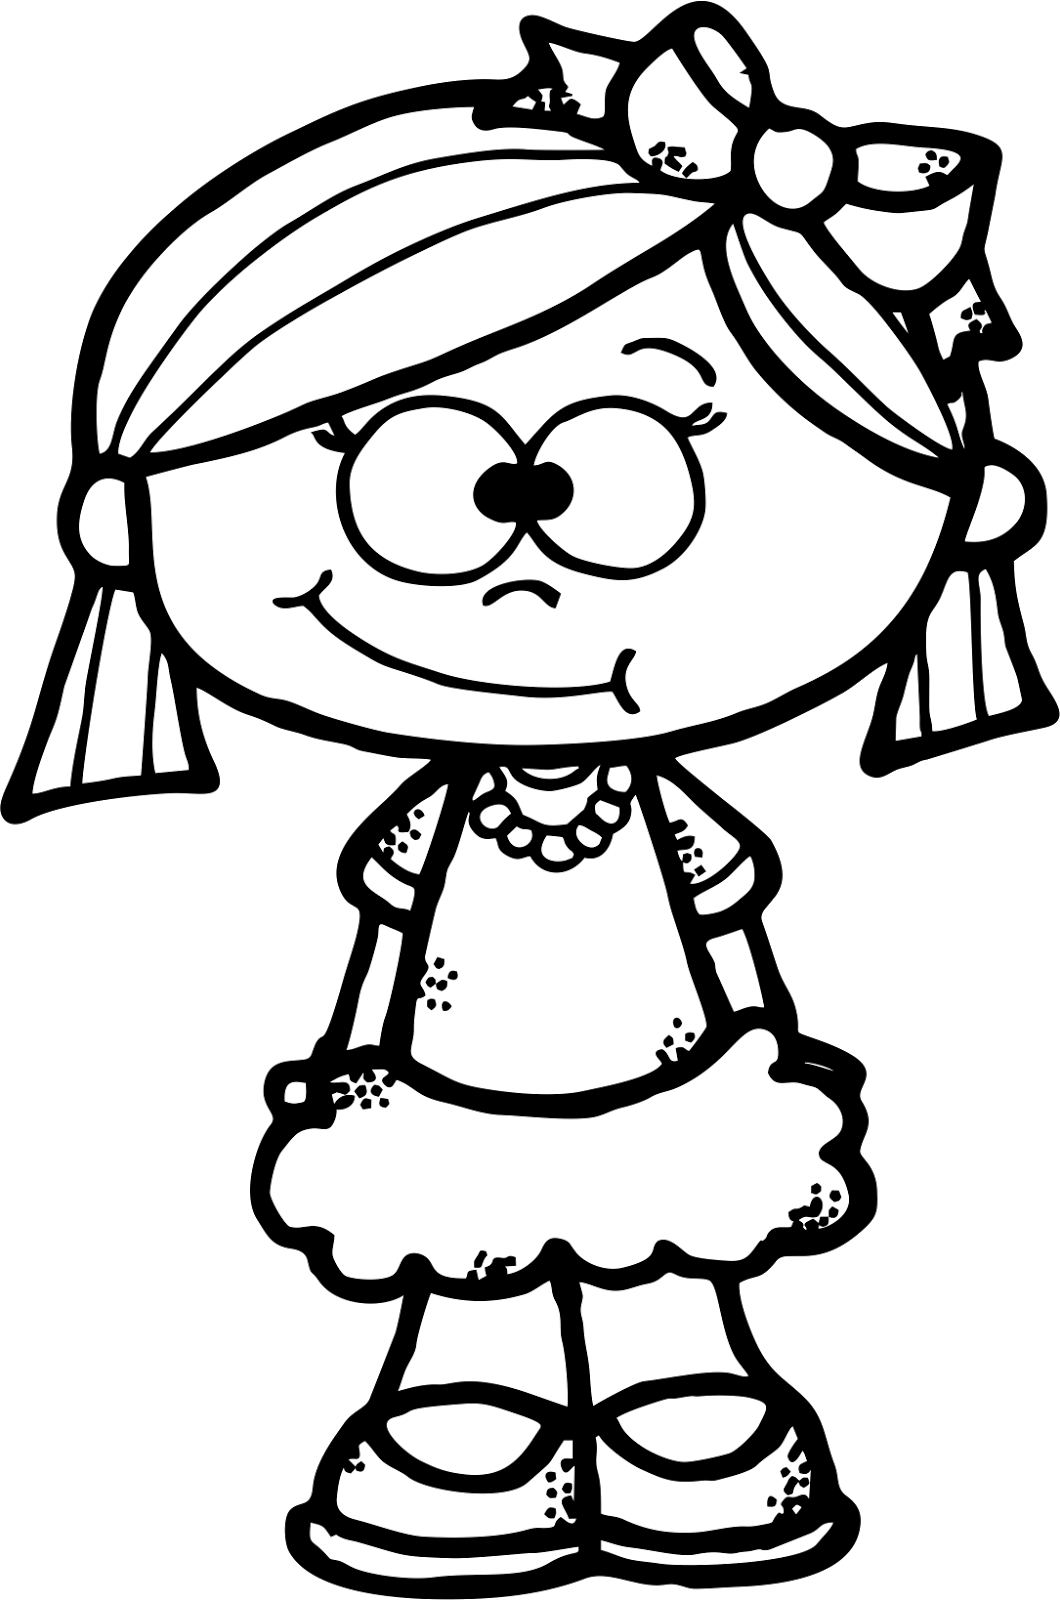 House painting clipart black and white svg freeuse WorksheetJunkie: Cute girl Clipart Freebie | dibujos | Pinterest ... svg freeuse